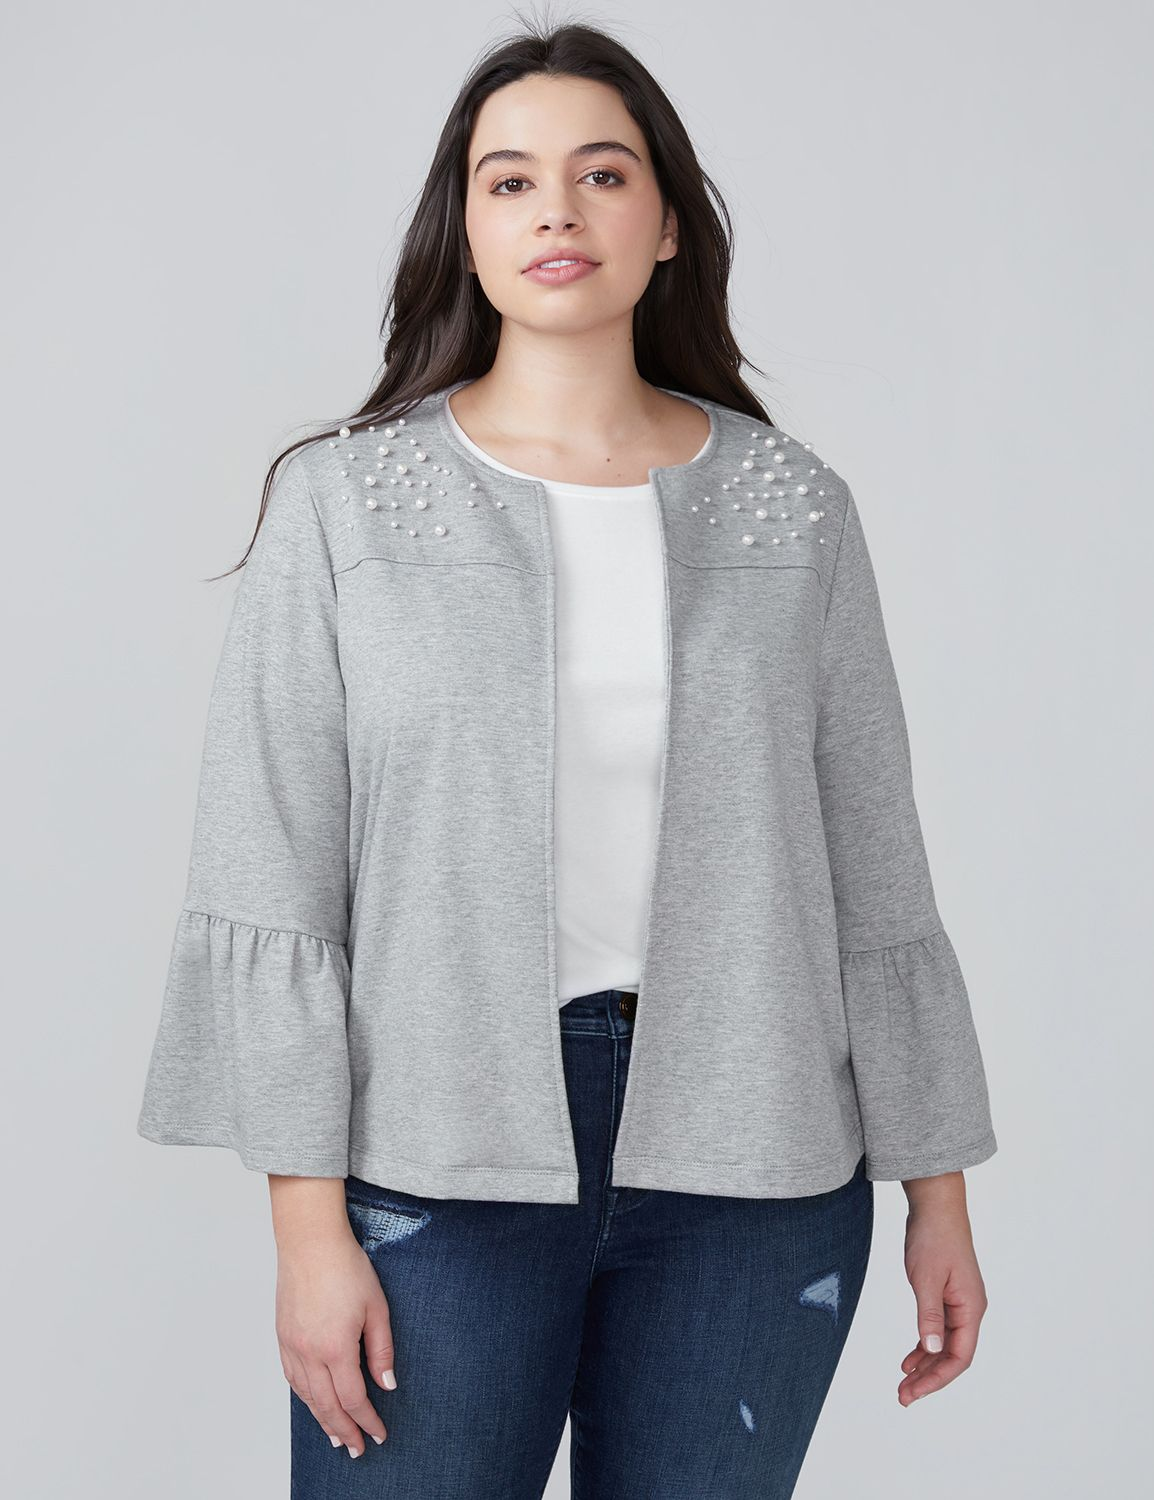 Lane Bryant Womens Bell-Sleeve Sweatshirt Jacket With Faux Pearls 14/16 Heather Gray